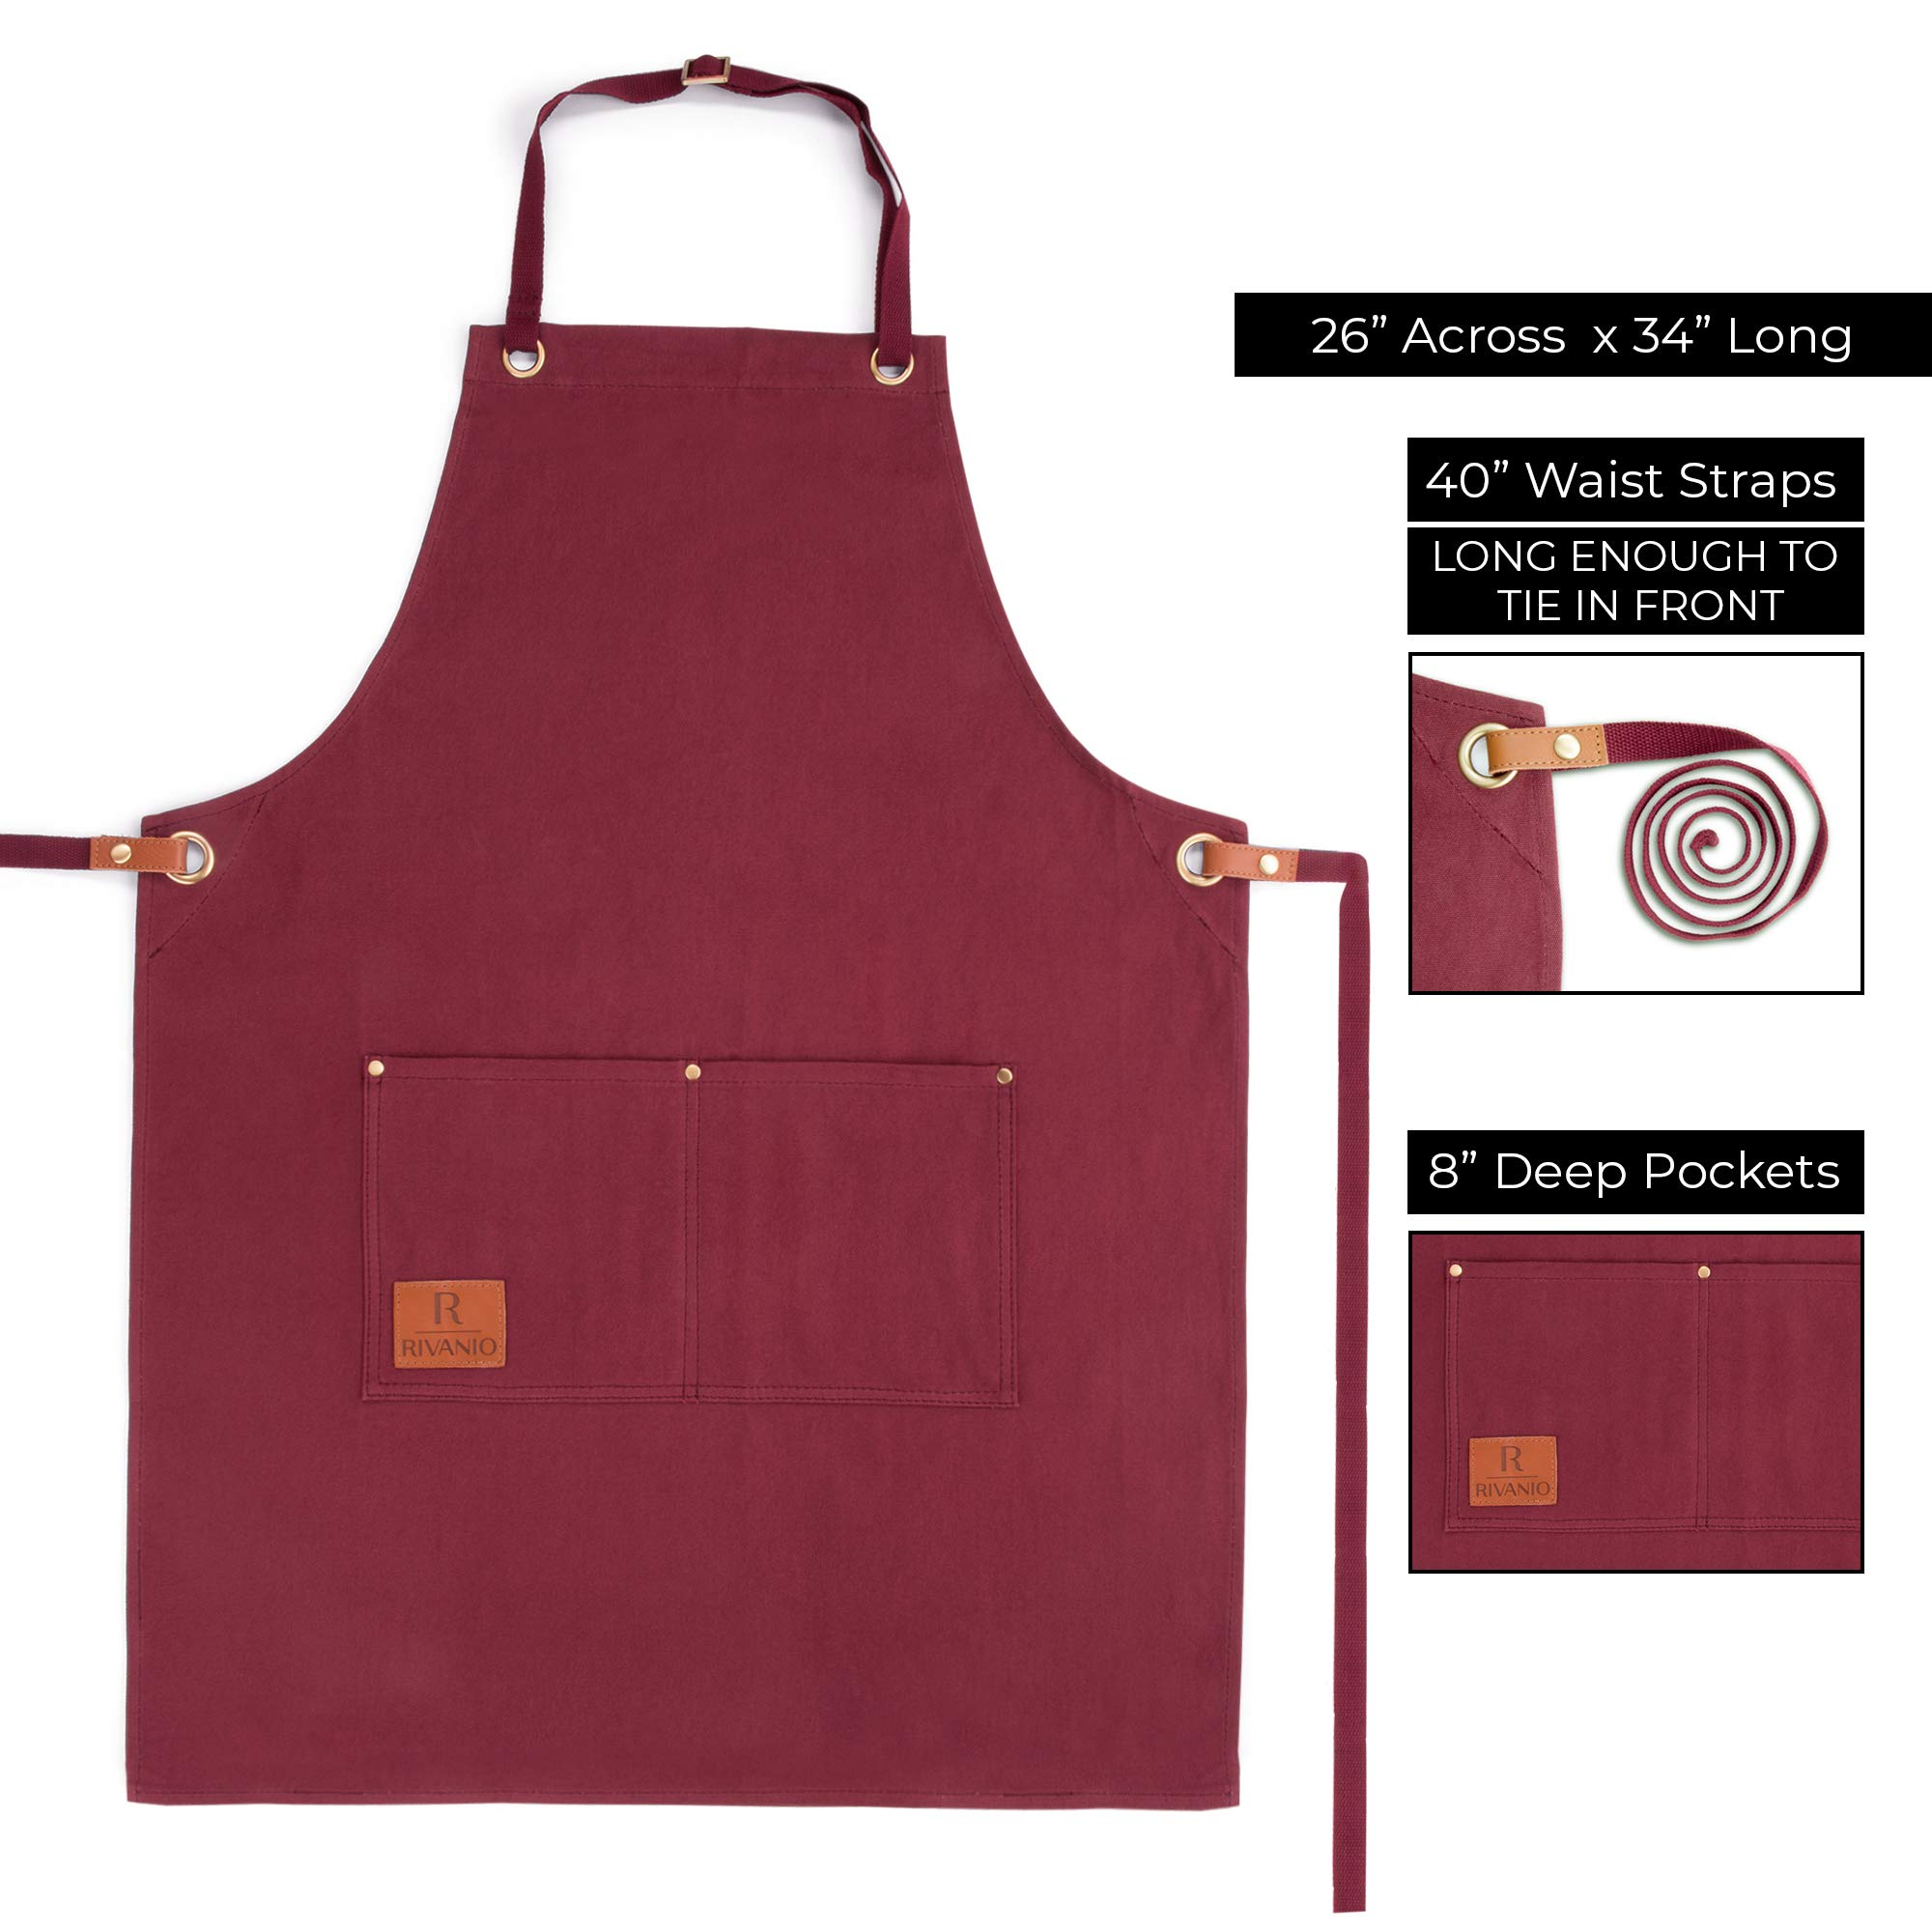 Rivanio Canvas Cooking Apron, Long with Large Pockets - Kitchen, Shop, Grilling, Workshop Aprons for Men and Women - Adjustable Neck and Waist Straps - Stylish, Professional, Lightweight Bibs by Rivanio (Image #3)